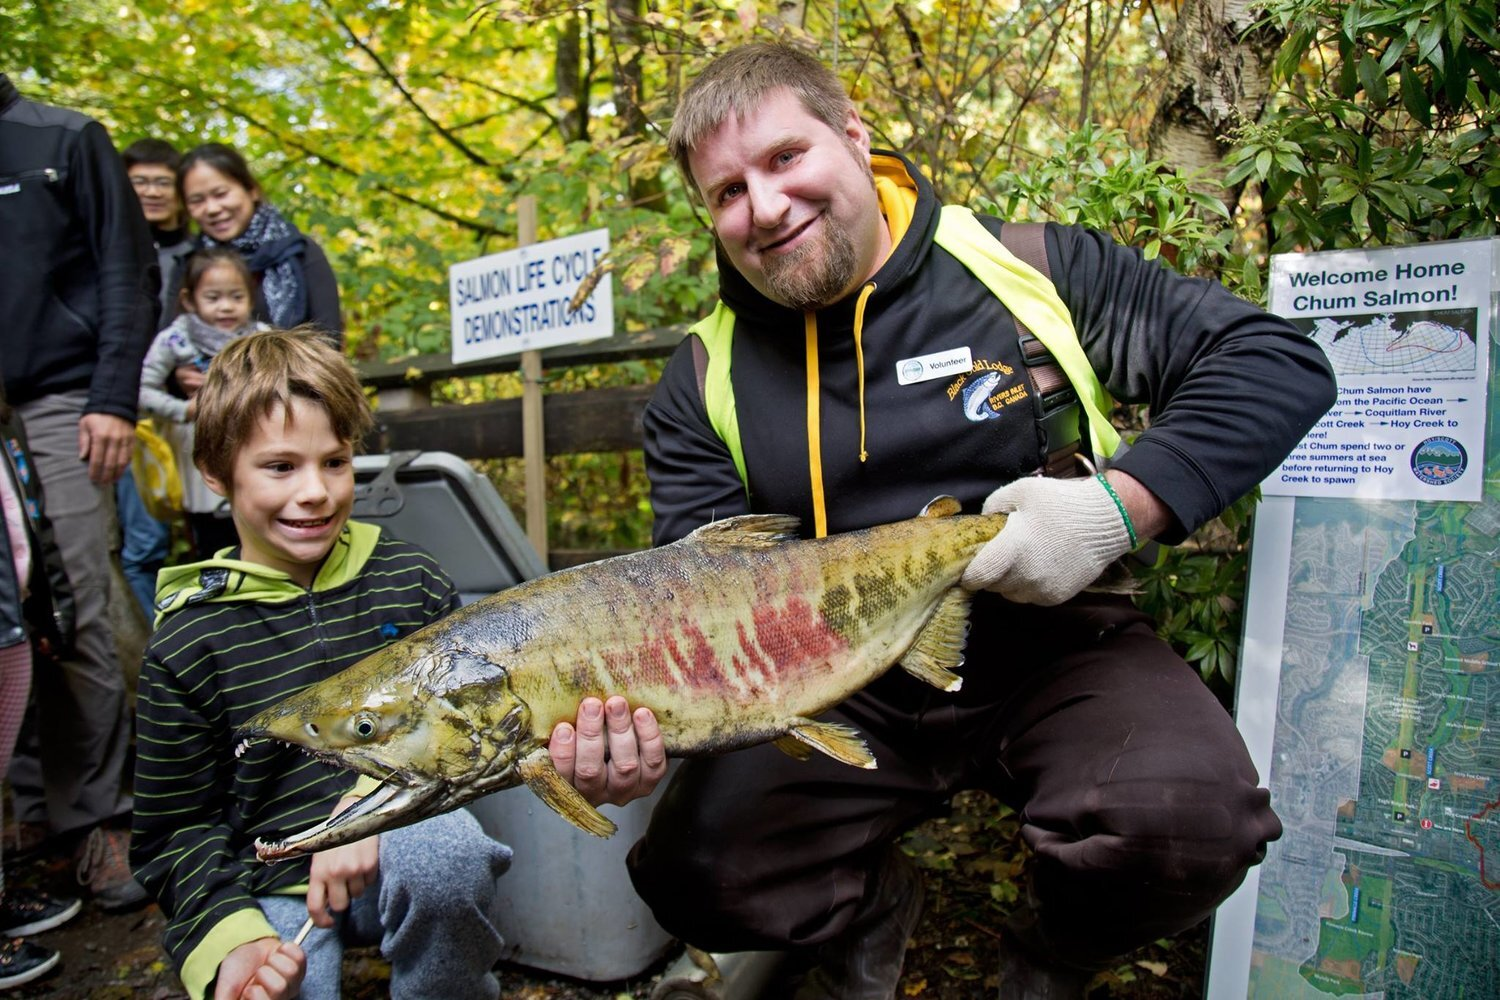 HSWS volunteer, AJ holds up a chum salmon for viewing at Salmon Come Home (Photo: City of Coquitlam)